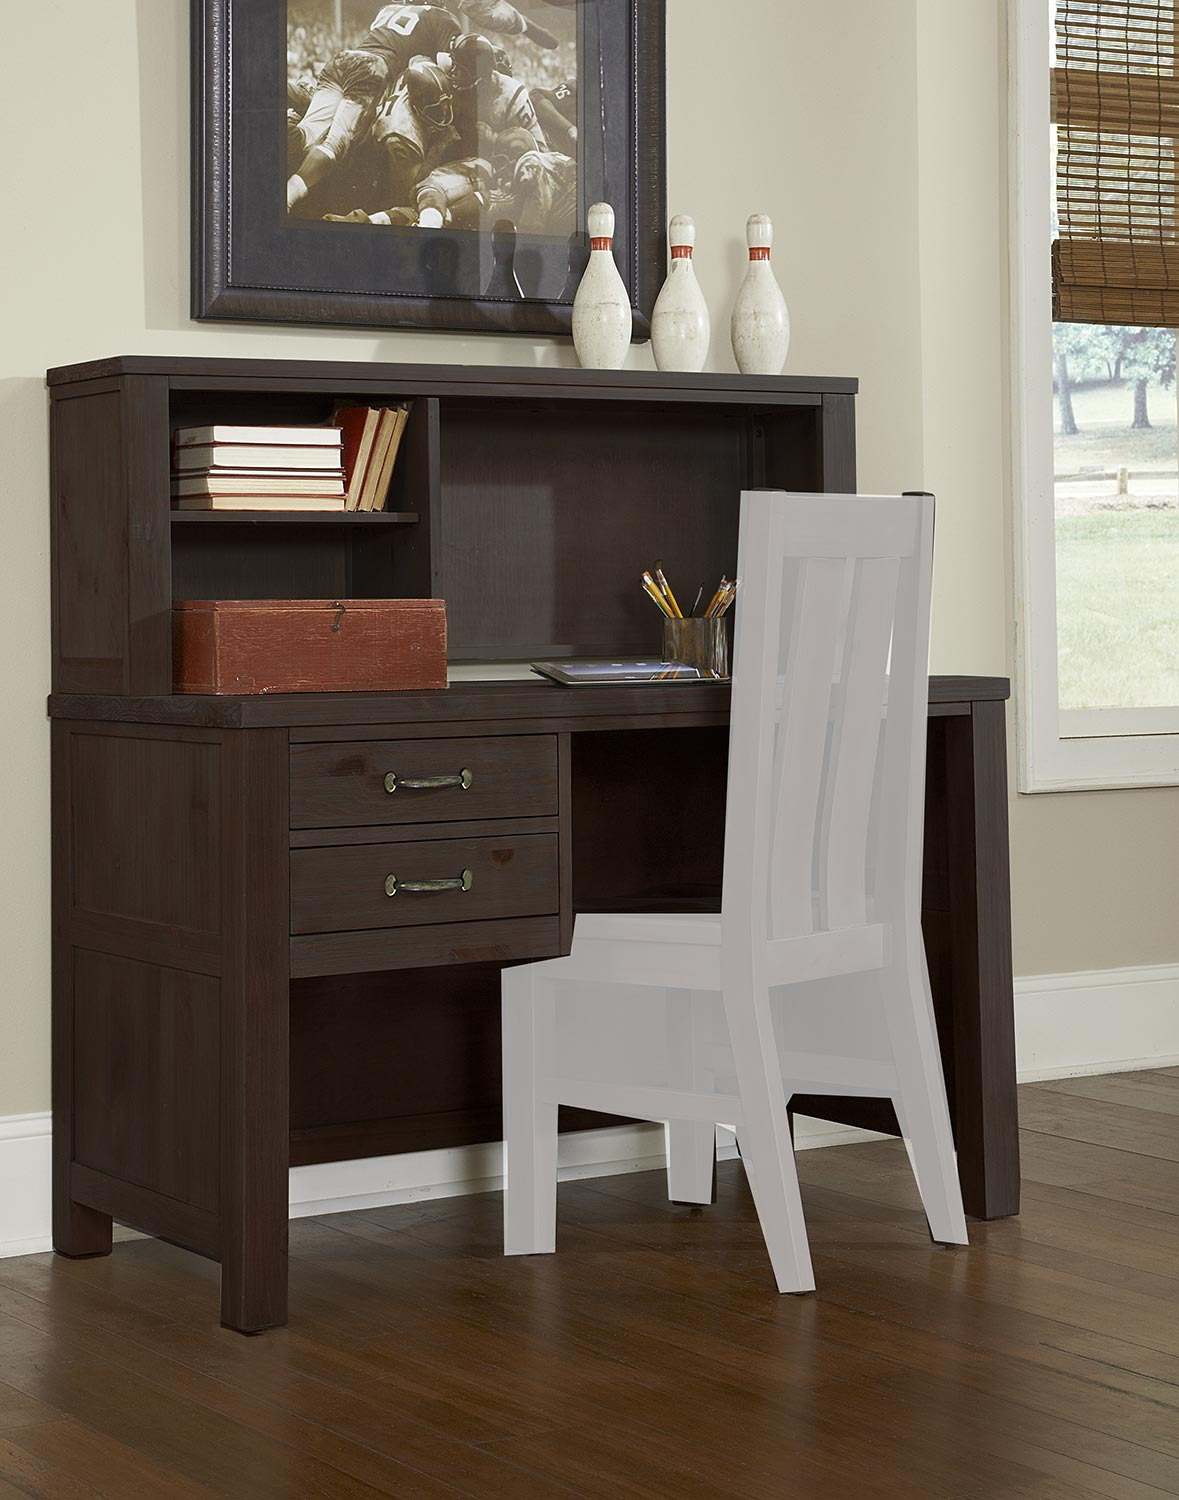 NE Kids Highlands Desk with Hutch - Espresso